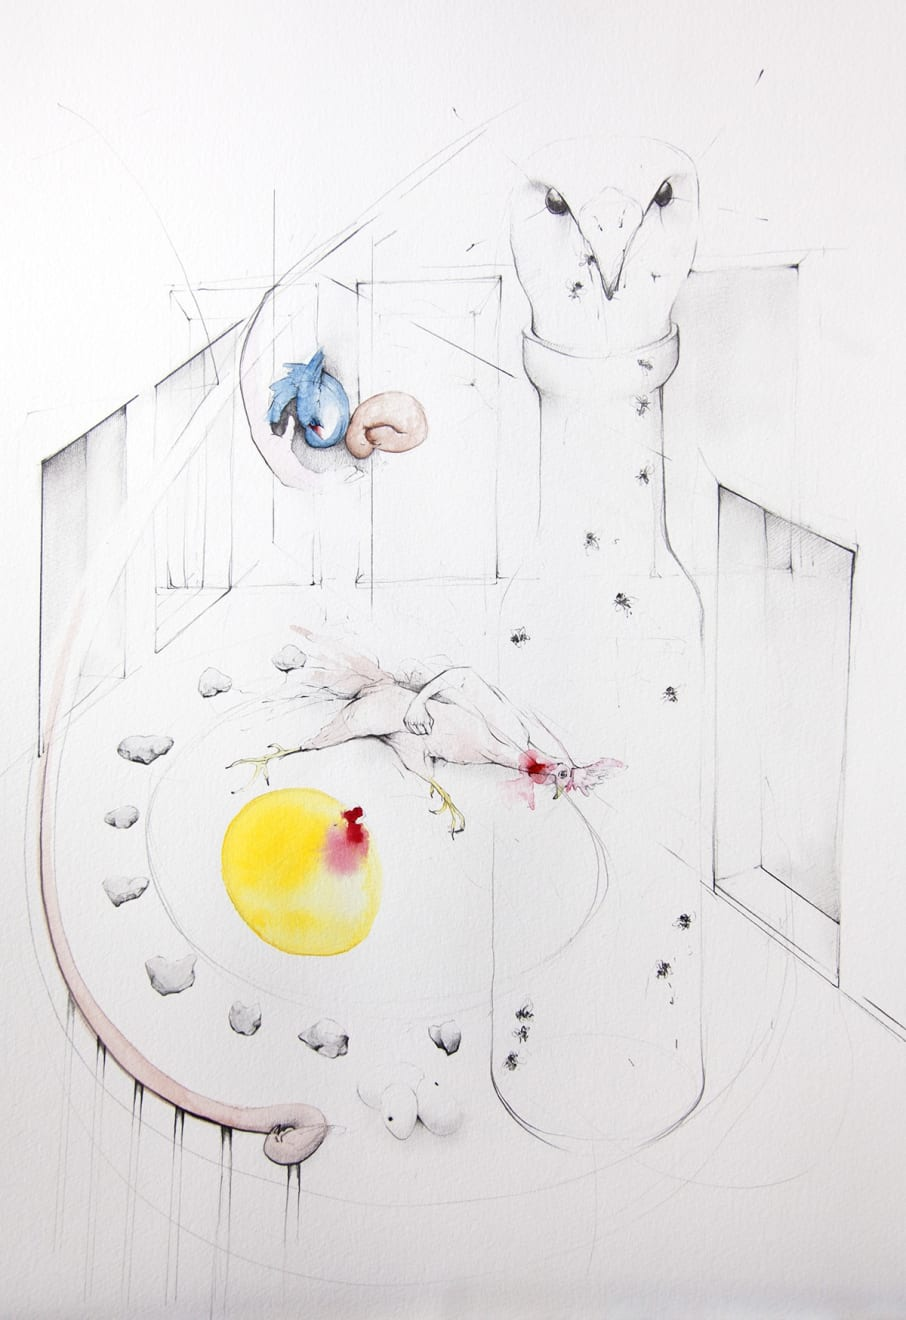 Kirsty Whiten, Intuiative Drawing (Dream Birds), 2019 Pencil and watercolour on paper, 42 x 56 cm